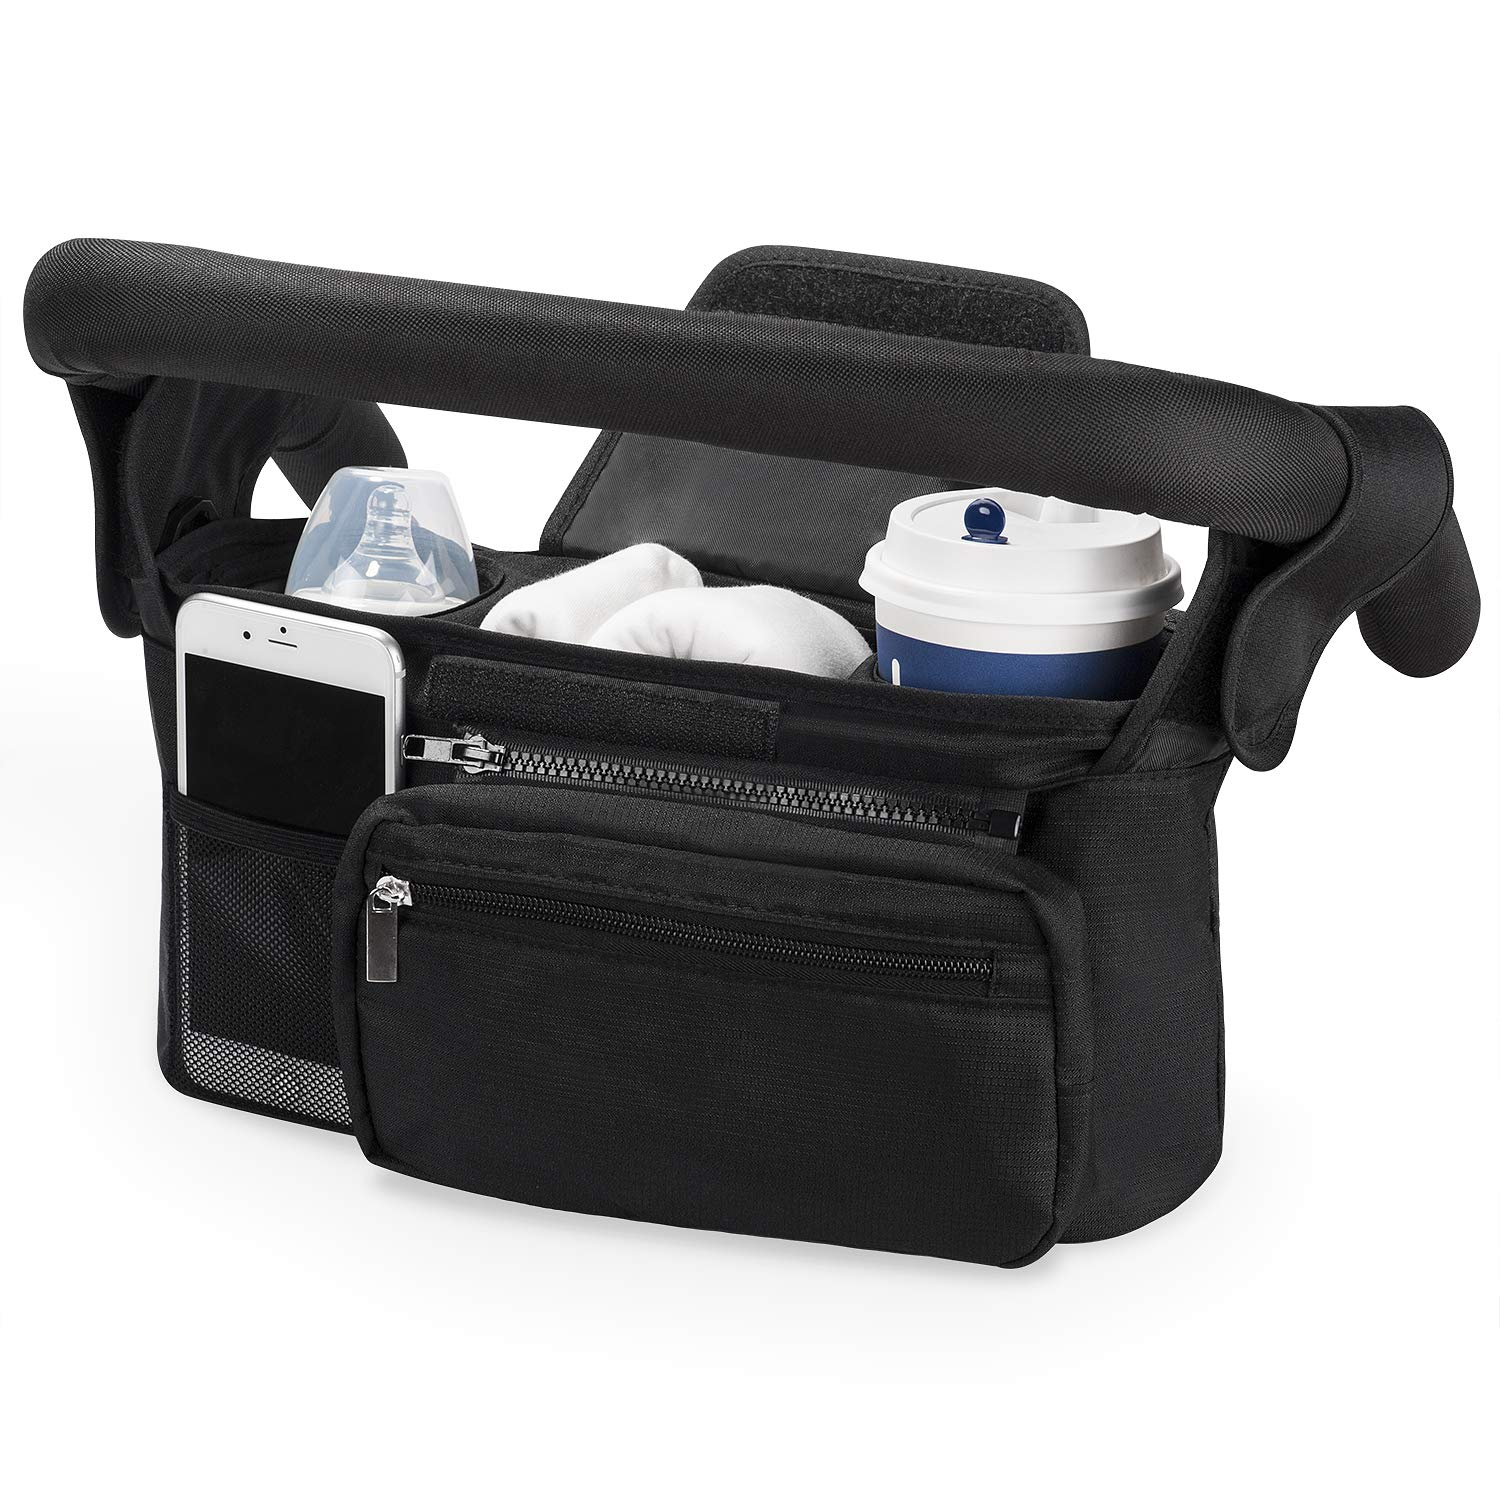 Wallets Stroller Organizer for Smart Moms Extra Storage Space for iPhones Toys Premium Deep Cup Holders The Perfect Baby Shower Gift Linen Diapers